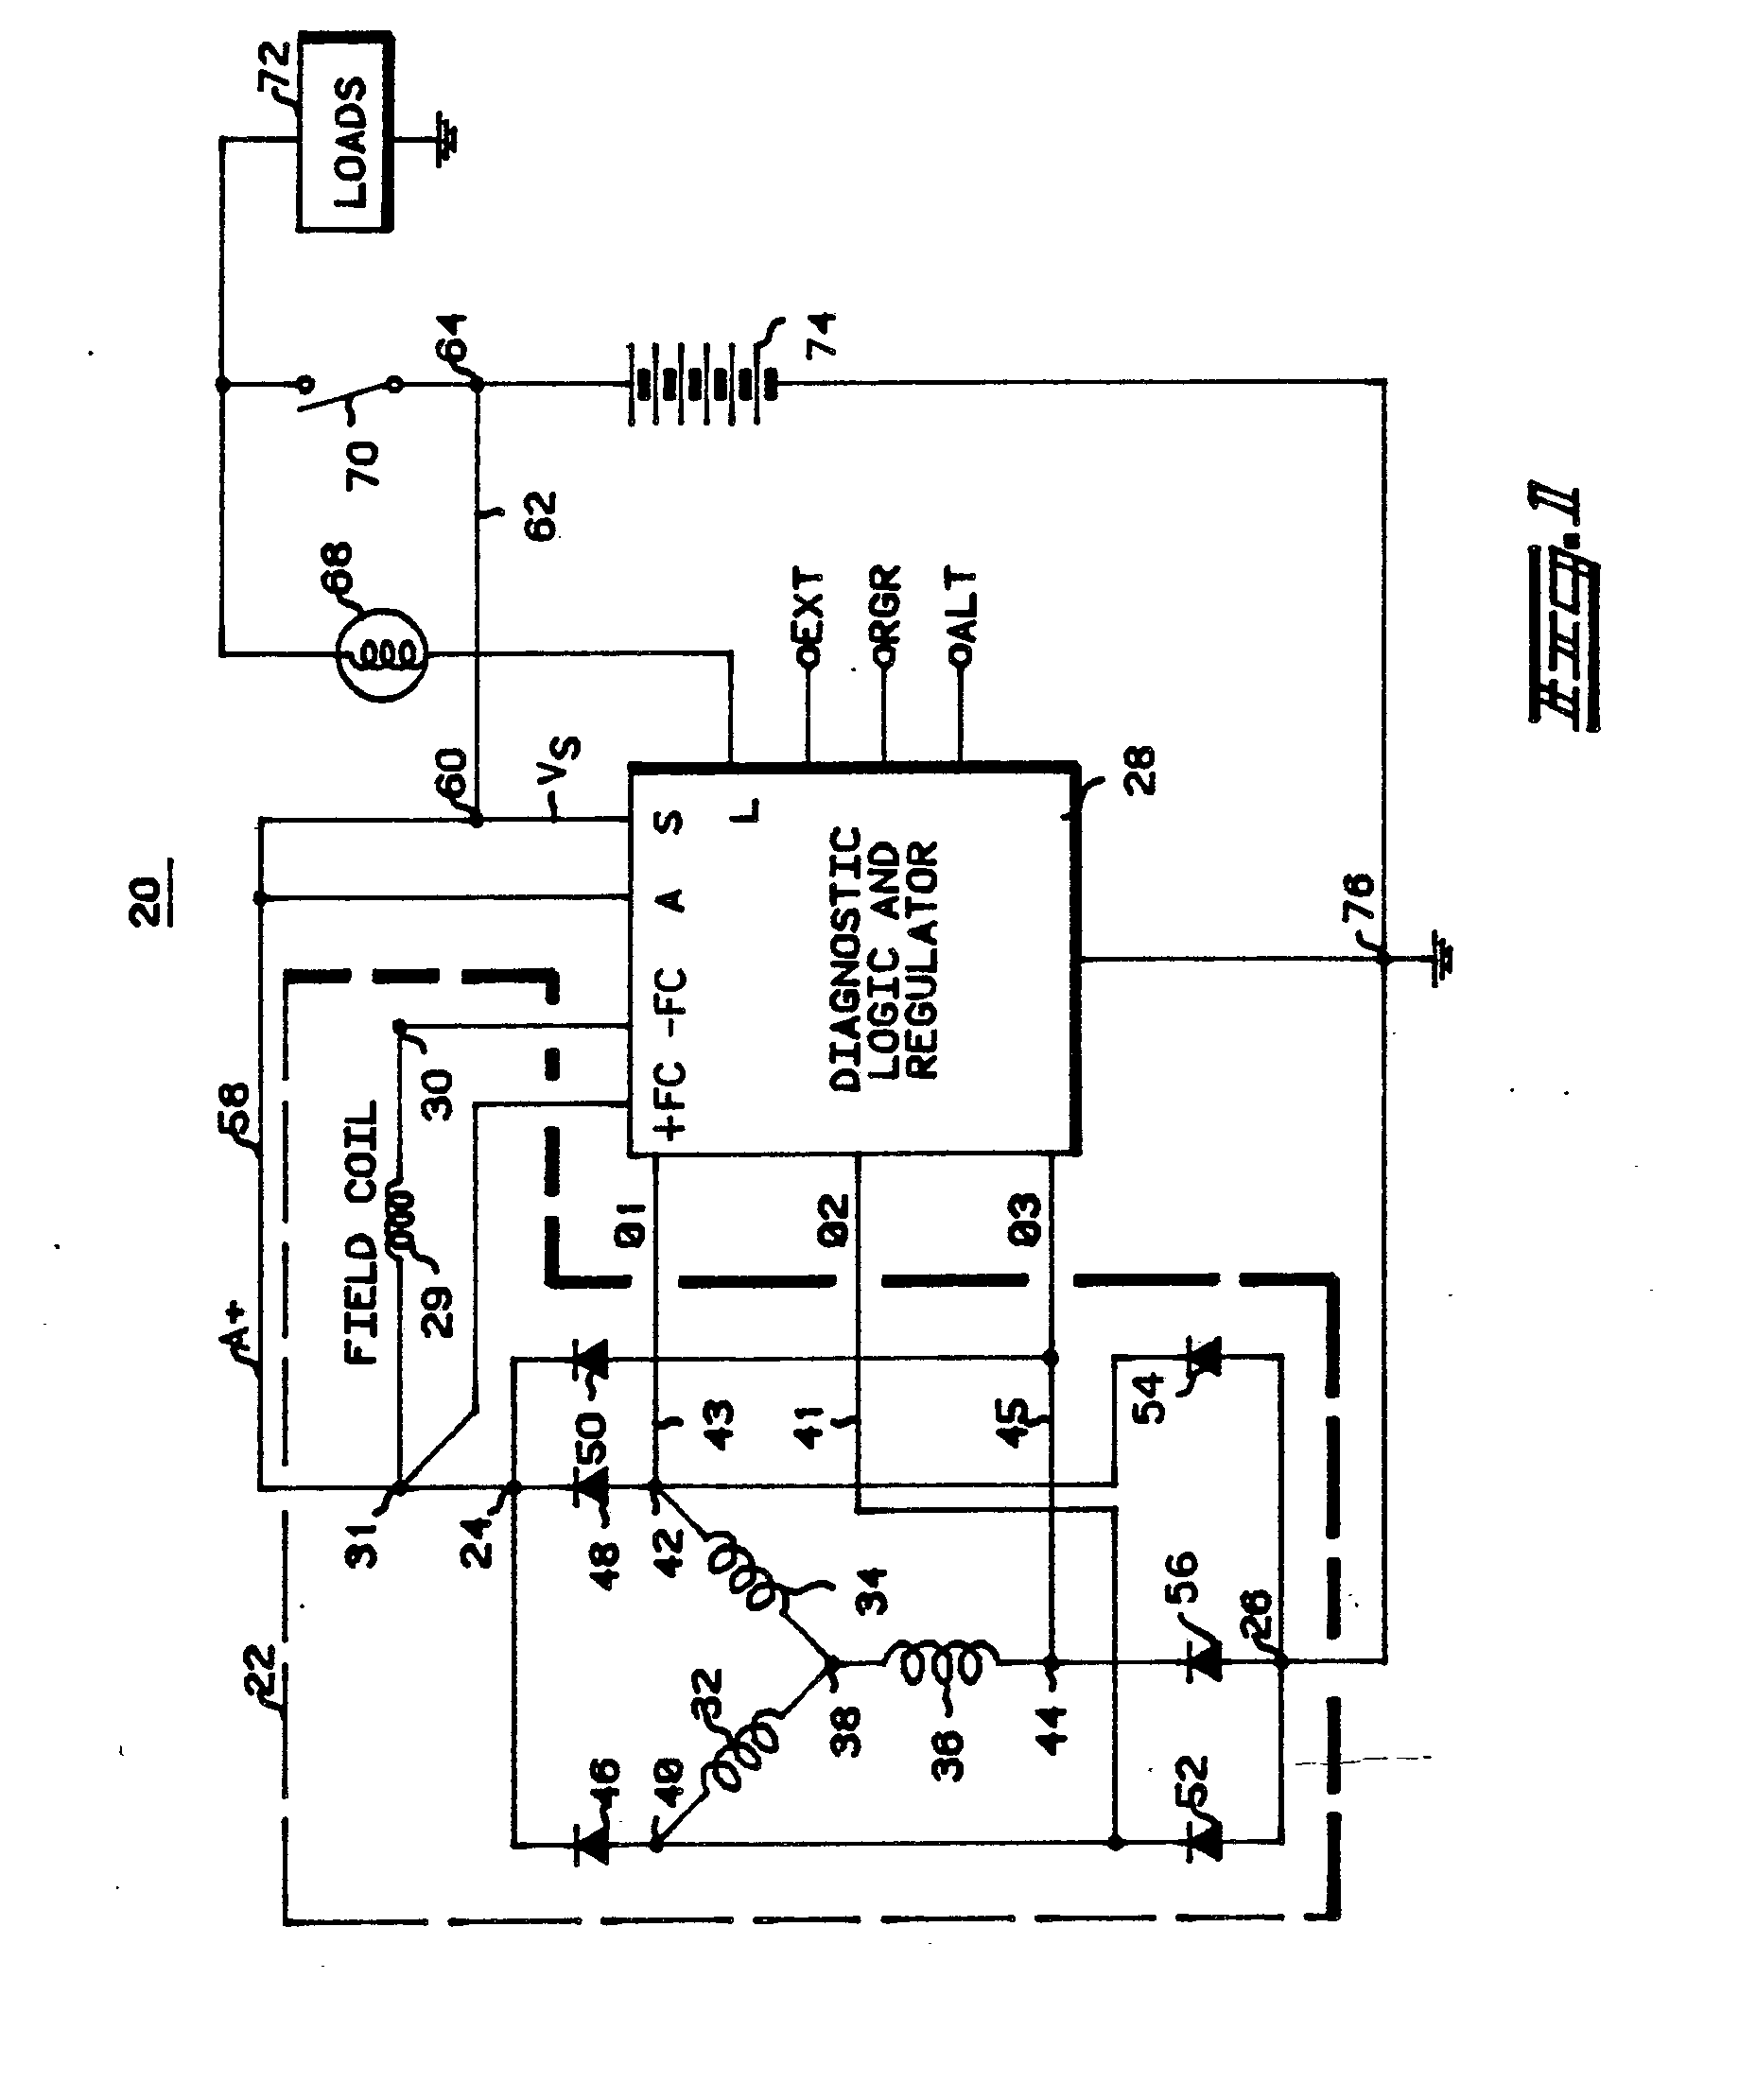 automotive wiring diagram on a pioneer cd player